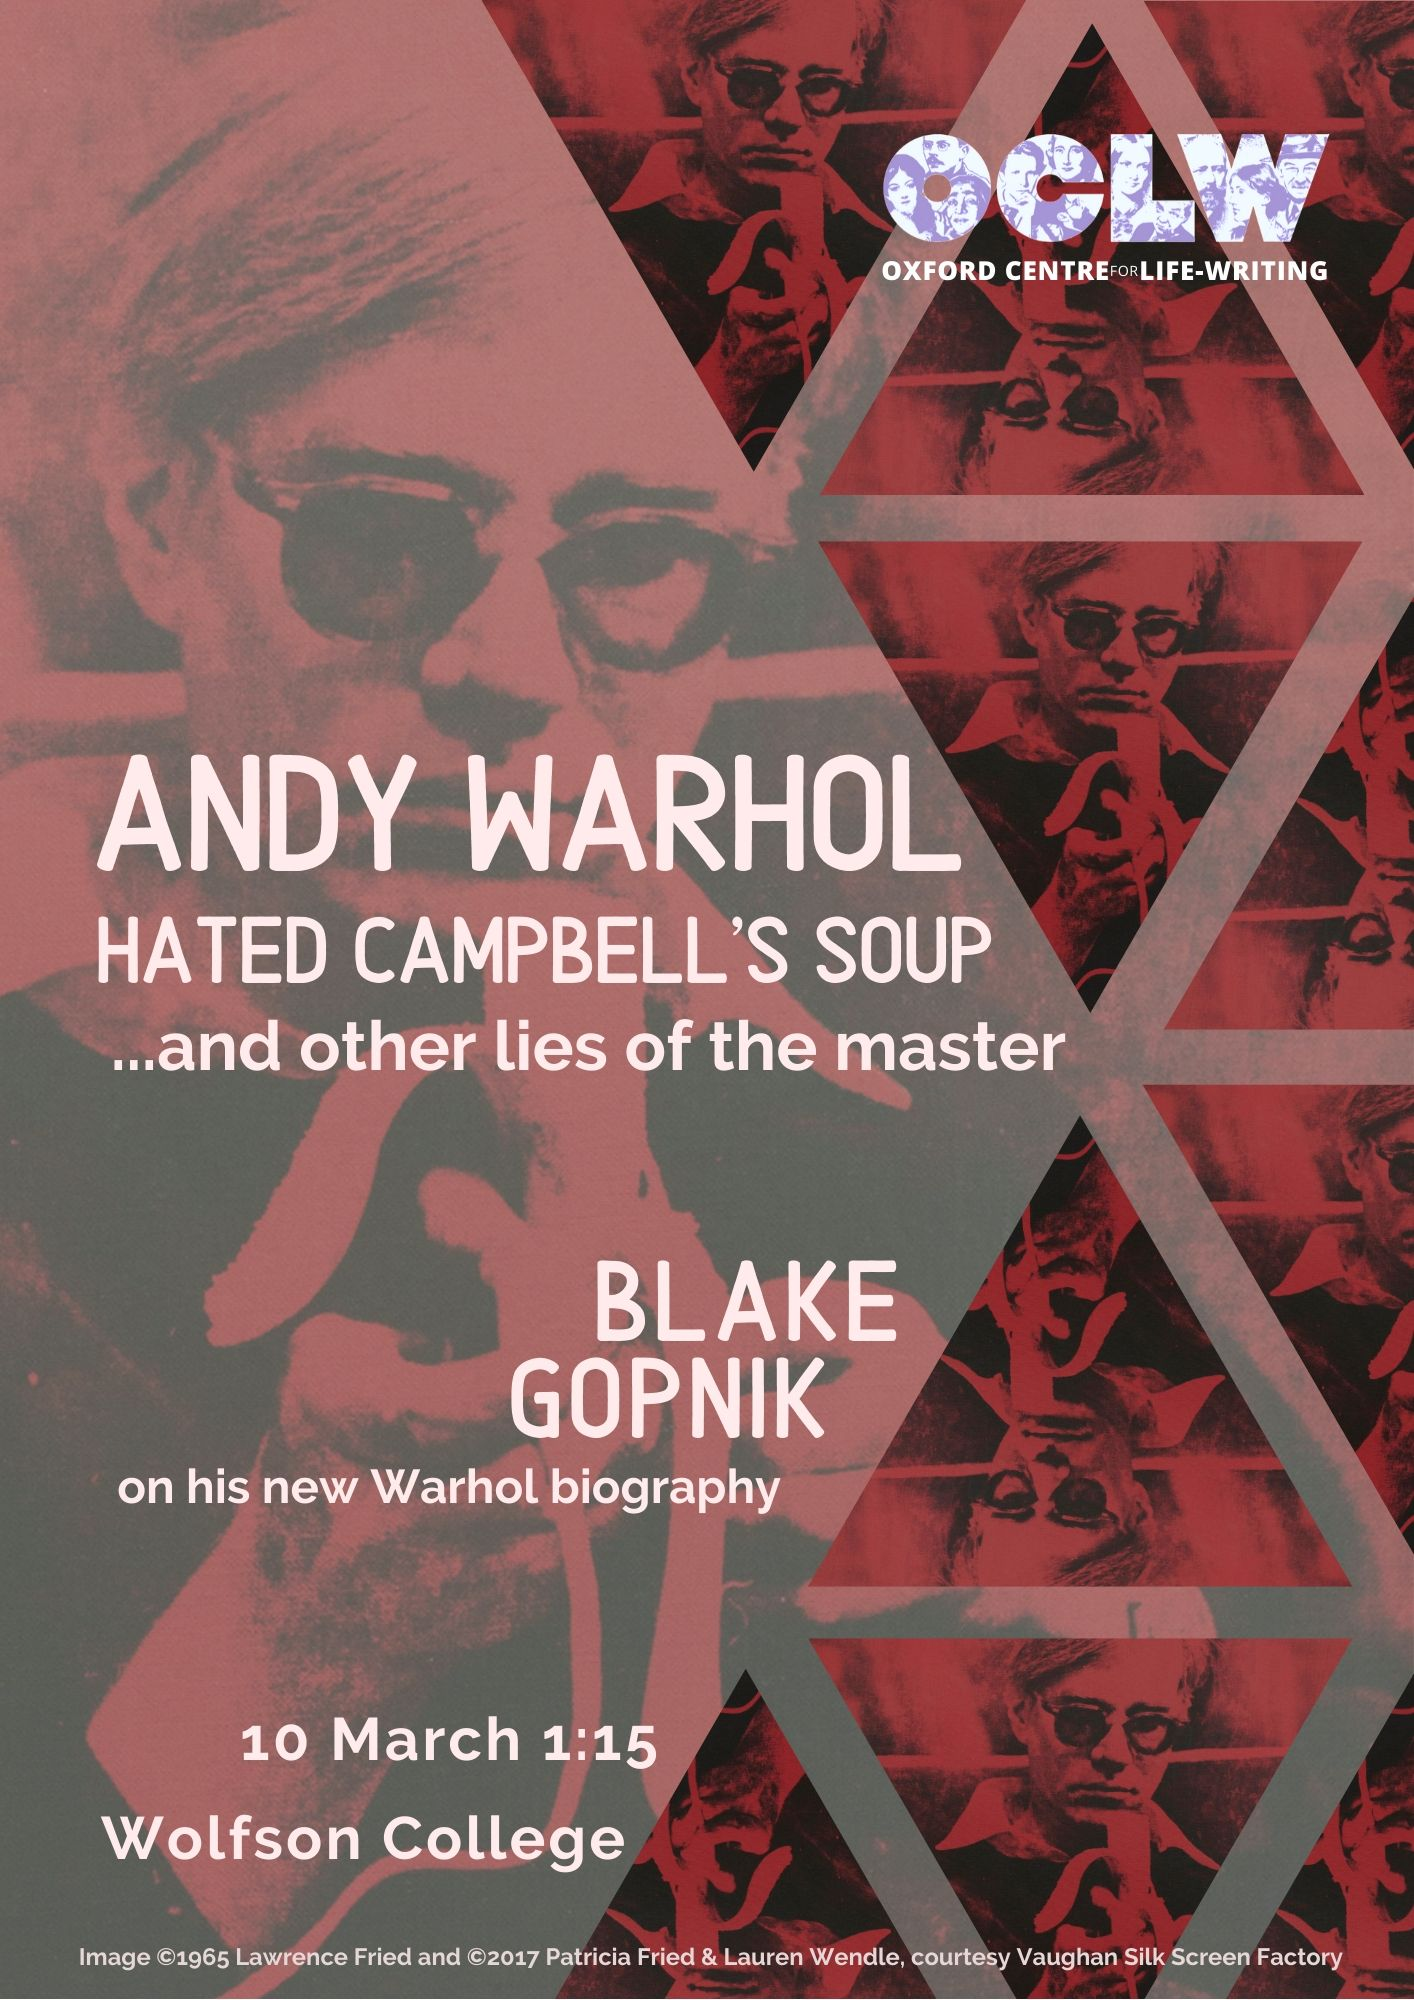 Andy Warhol Hated Campbell's Soup… and other lies of the master